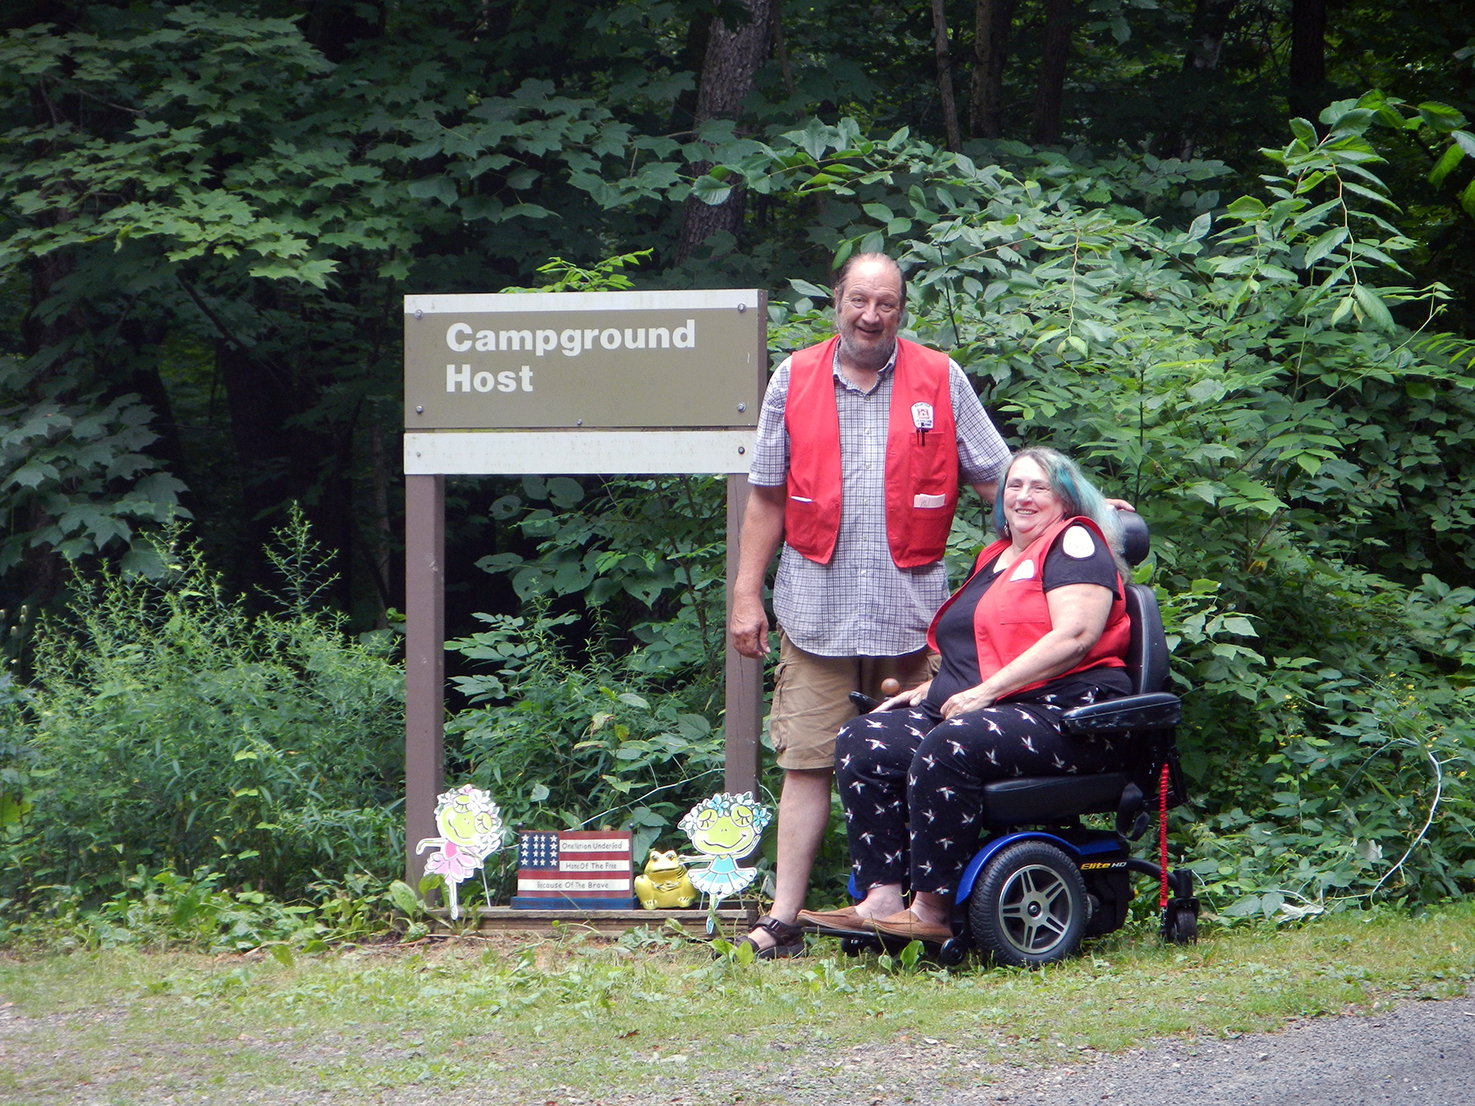 Volunteers - Campground Host